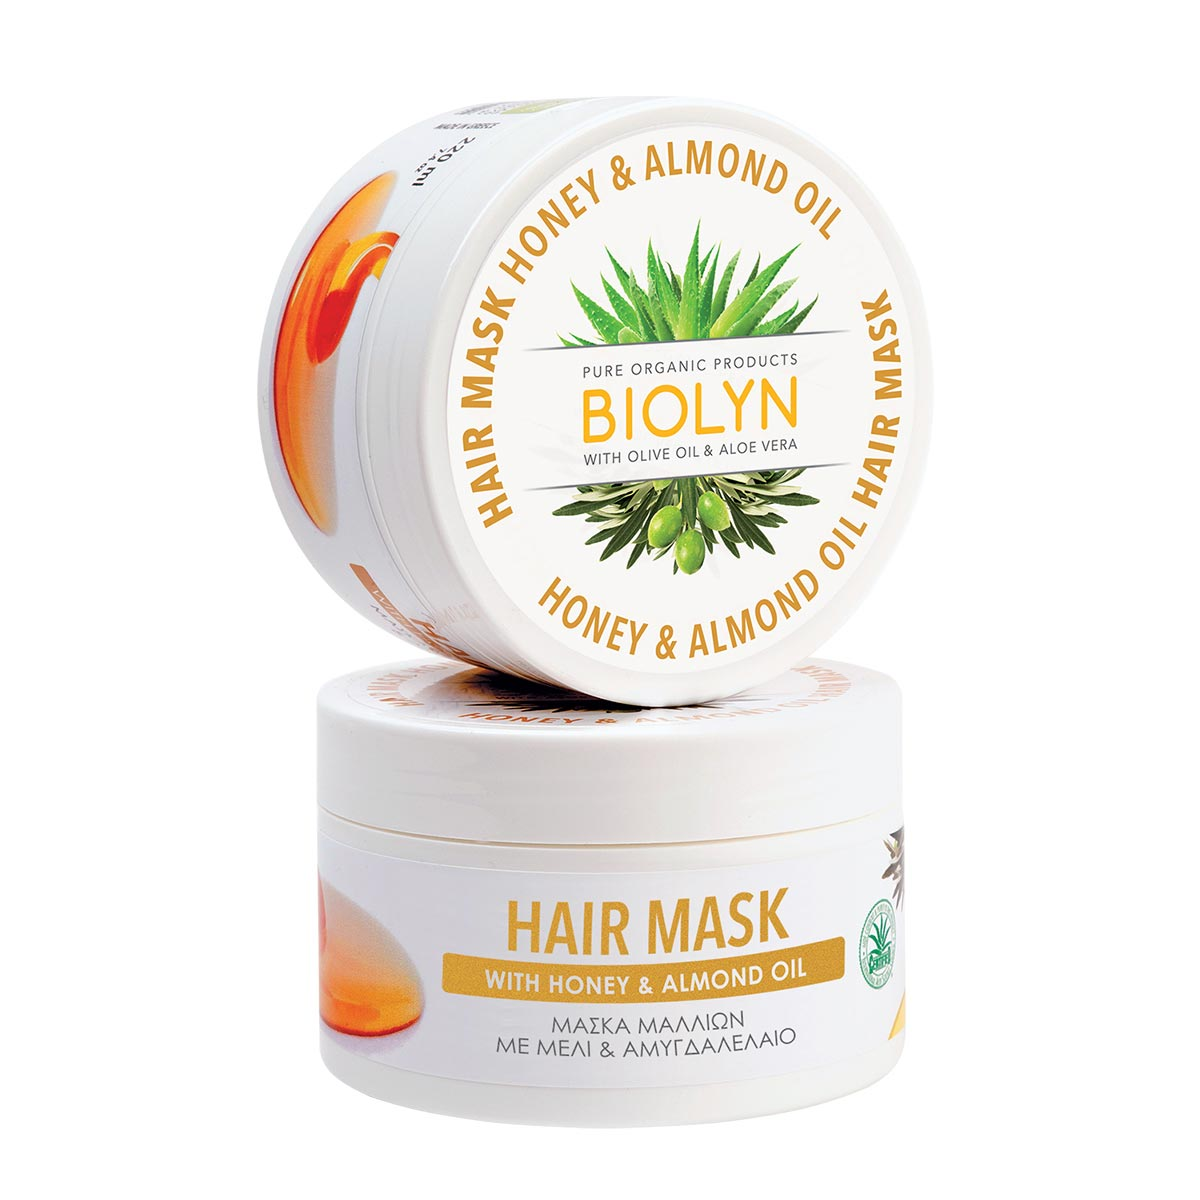 HAIR MASK with Honey & Almond Oil